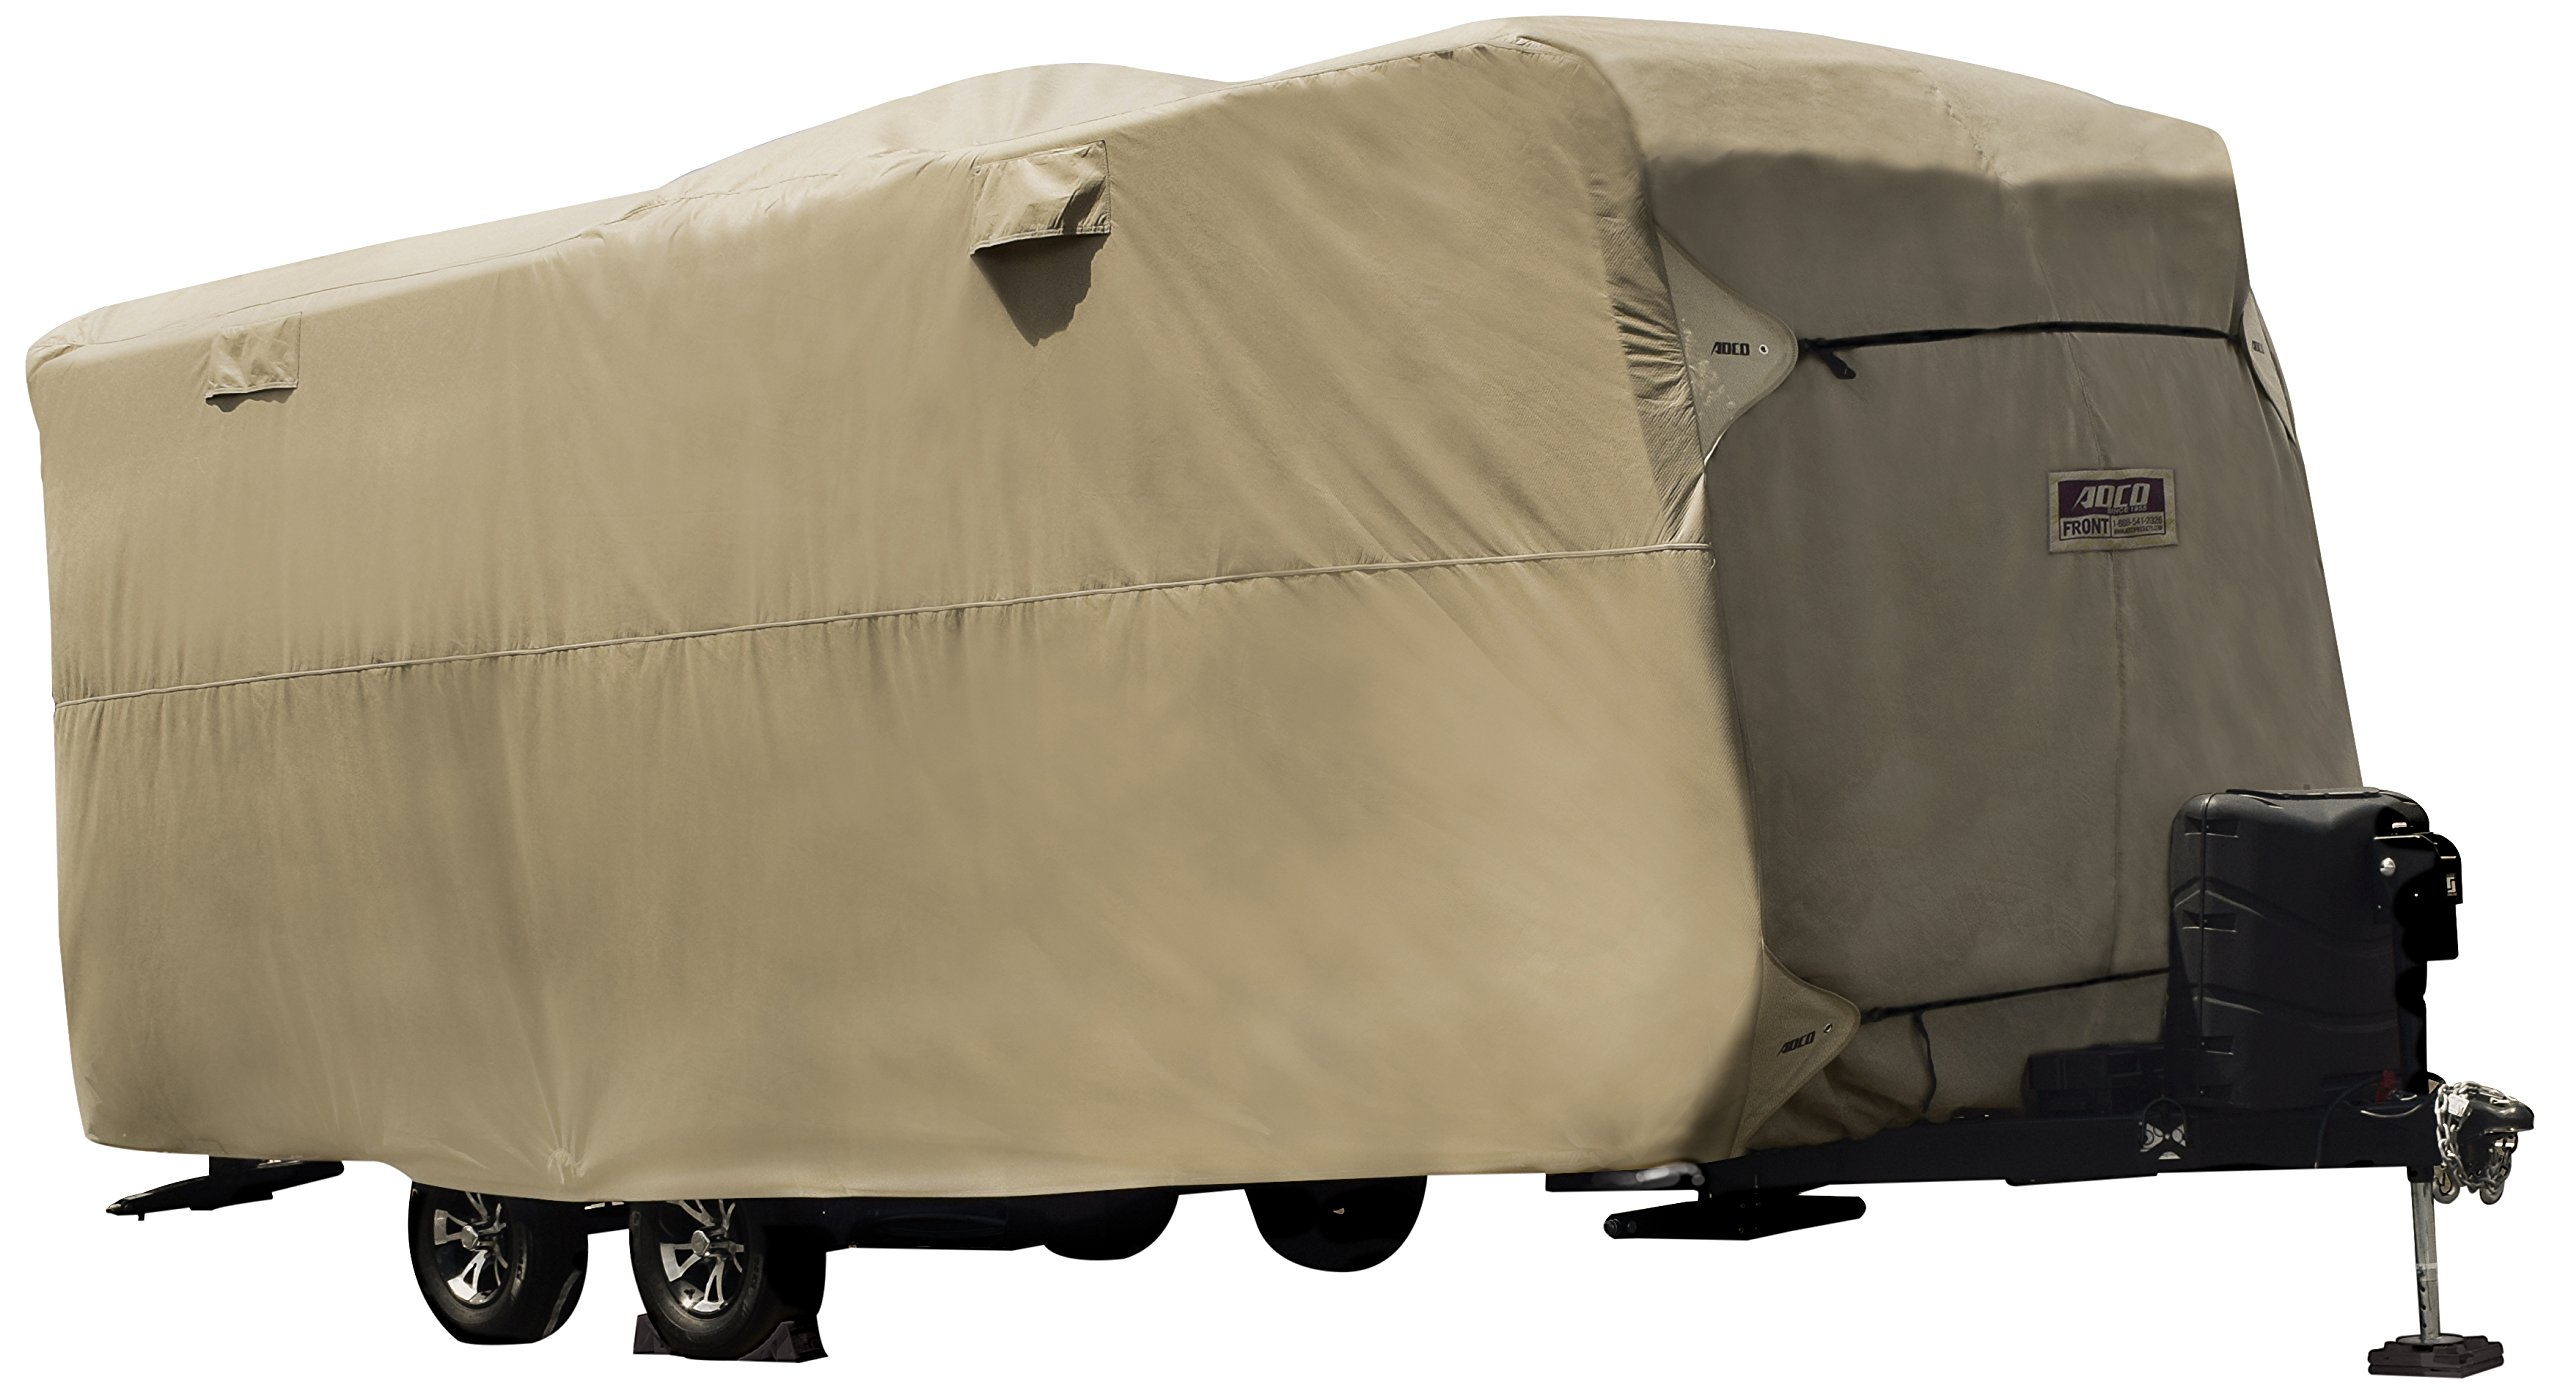 ADCO by Covercraft 74847 Storage Lot Cover for Travel Trailer RV, Fits 34'1''-37', Tan by Covercraft